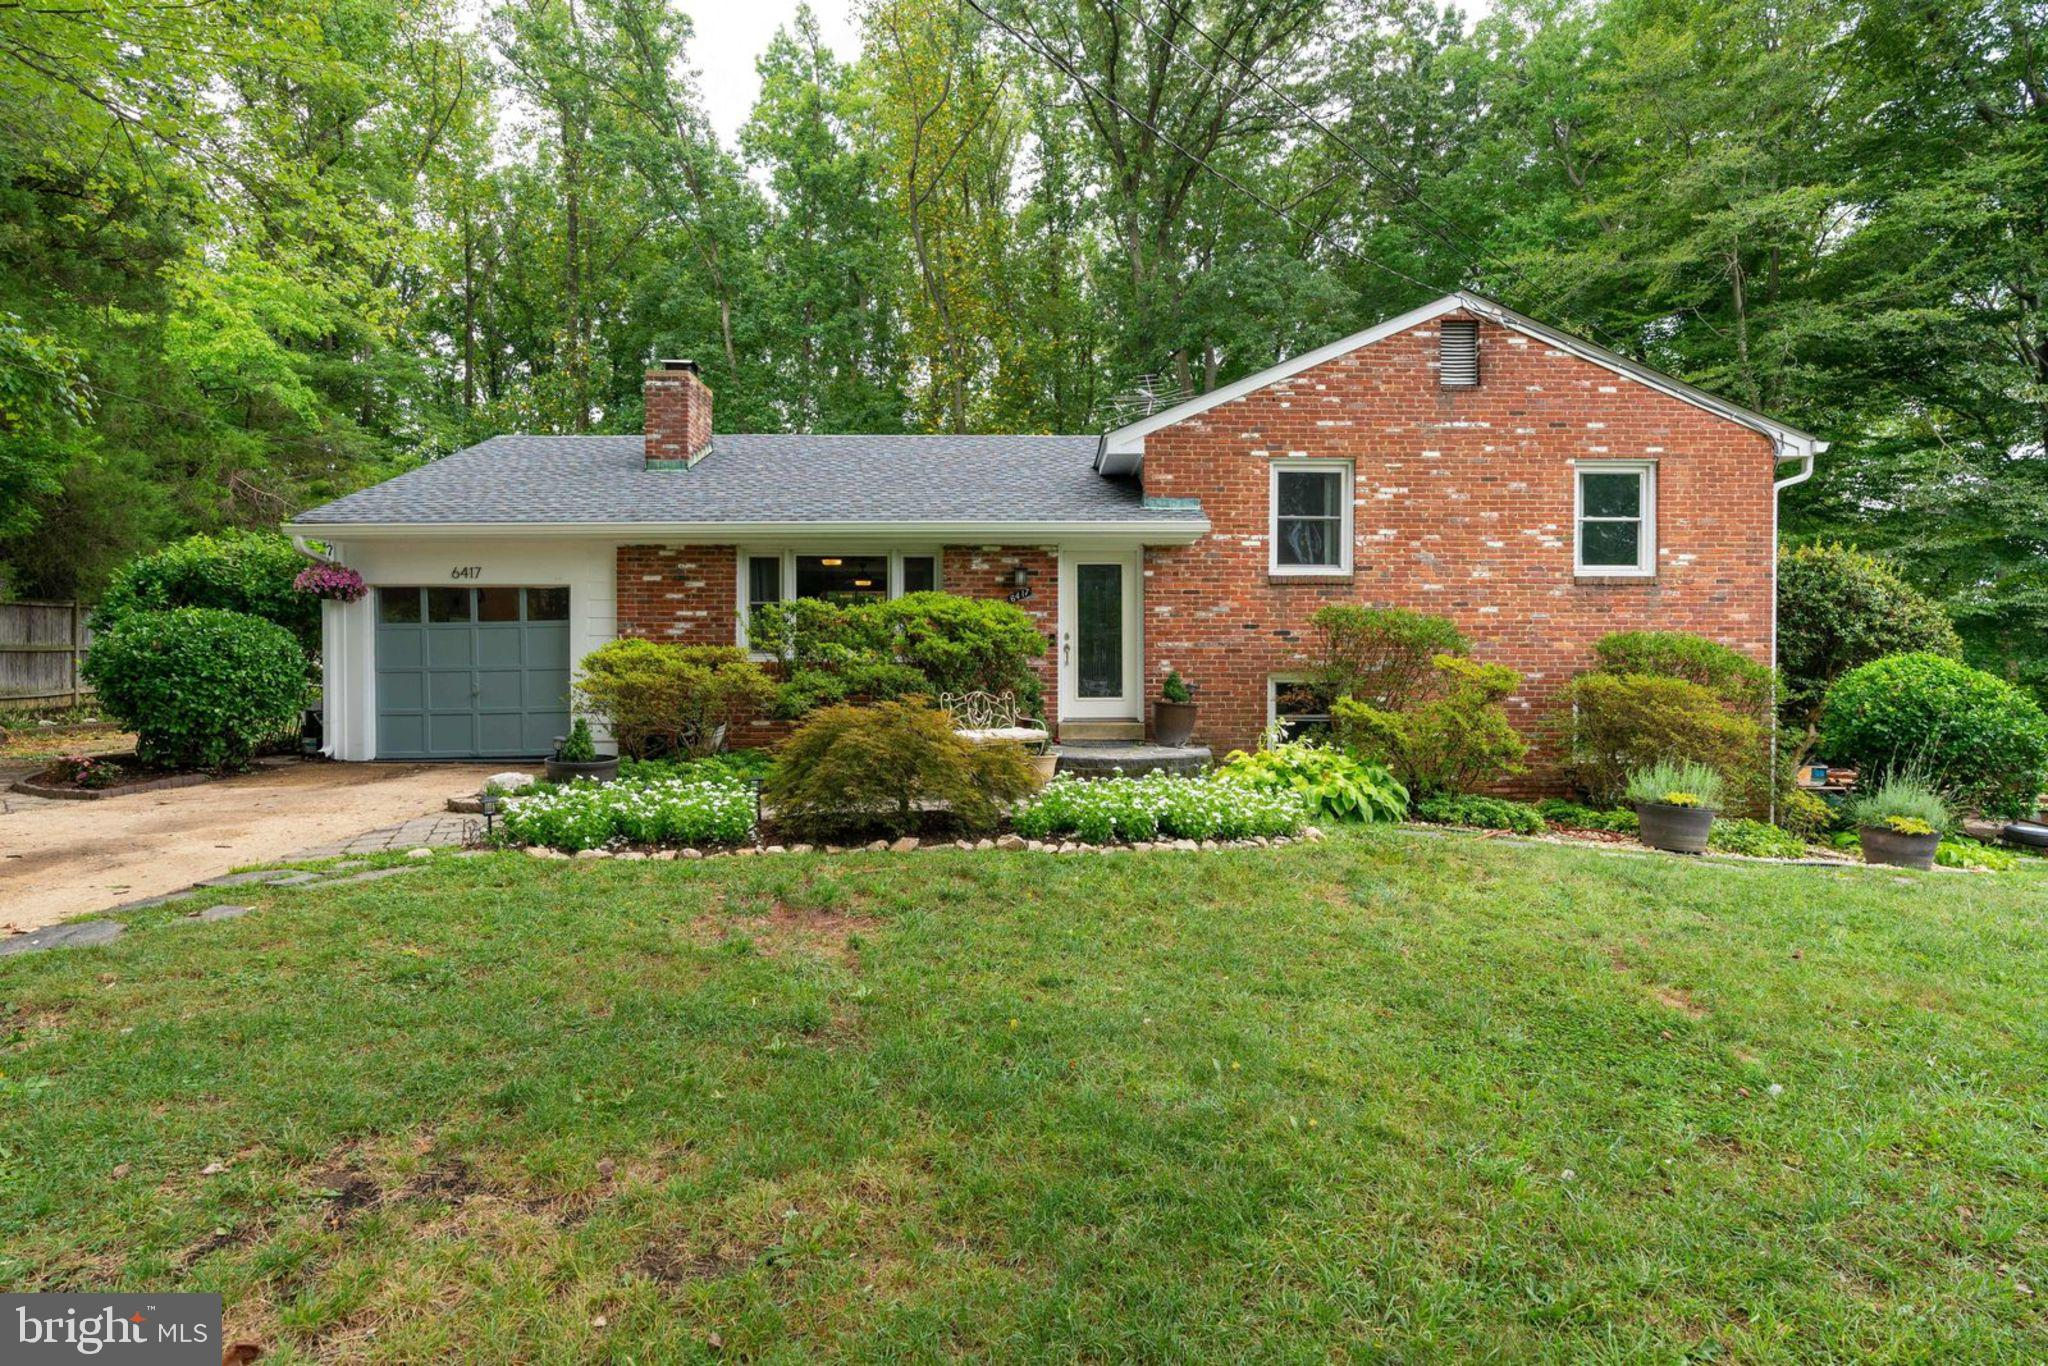 Lovely 4 bedroom, 3 bath split level backing to trees on almost an acre! Lots of updates await you! Updated kitchen with new stainless appliances and plenty of counter and cabinet space! Gleaming hardwoods throughout the main level! Updated master bedroom and master bath, as well as updated flooring. Additional three bedrooms with refinished, gleaming hardwood floors. Updated hall bath! Spacious lower level walk-out with lots of finished living space to be creative. Large rear patio is wonderful for outdoor entertaining! This home has only had two owners! Close to shopping, transportation and the 495/395/95 corridor! Hurry, this one won't last! Can do close to a 30 day closing if necessary.